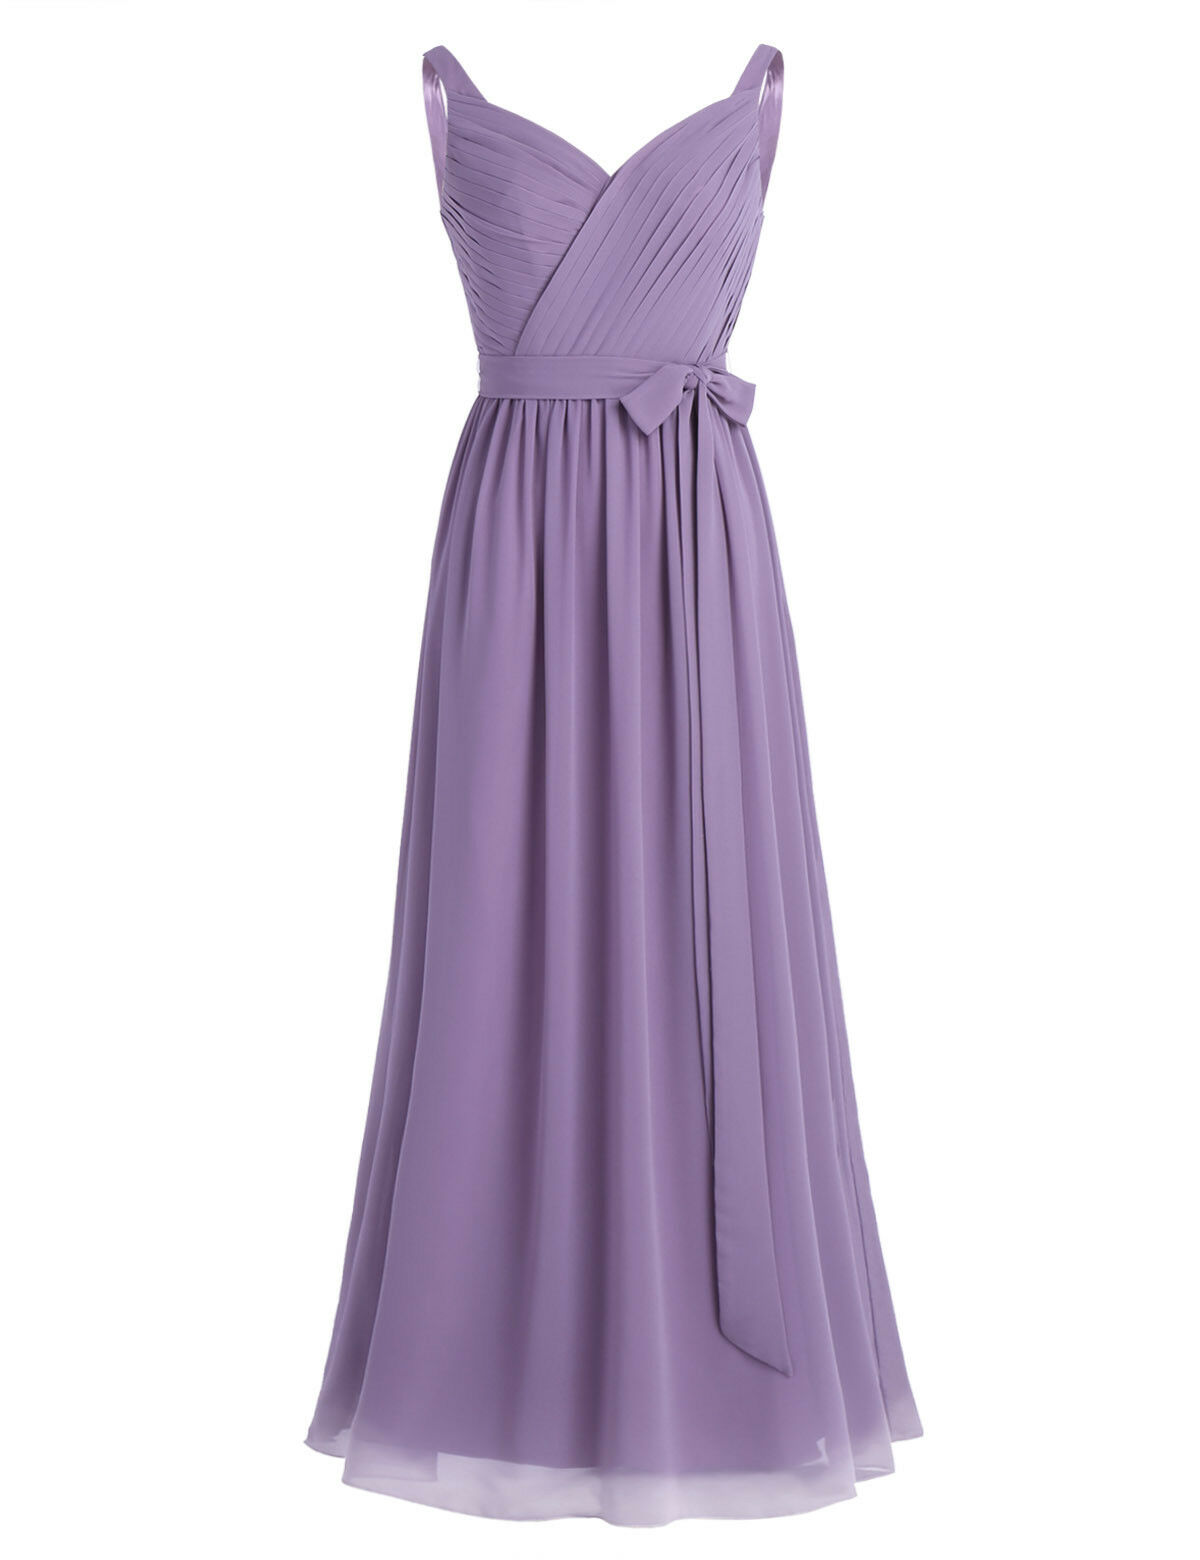 Formal Wedding Bridesmaid Long Evening Party Ball Prom Gowns Cocktail Maxi Dress